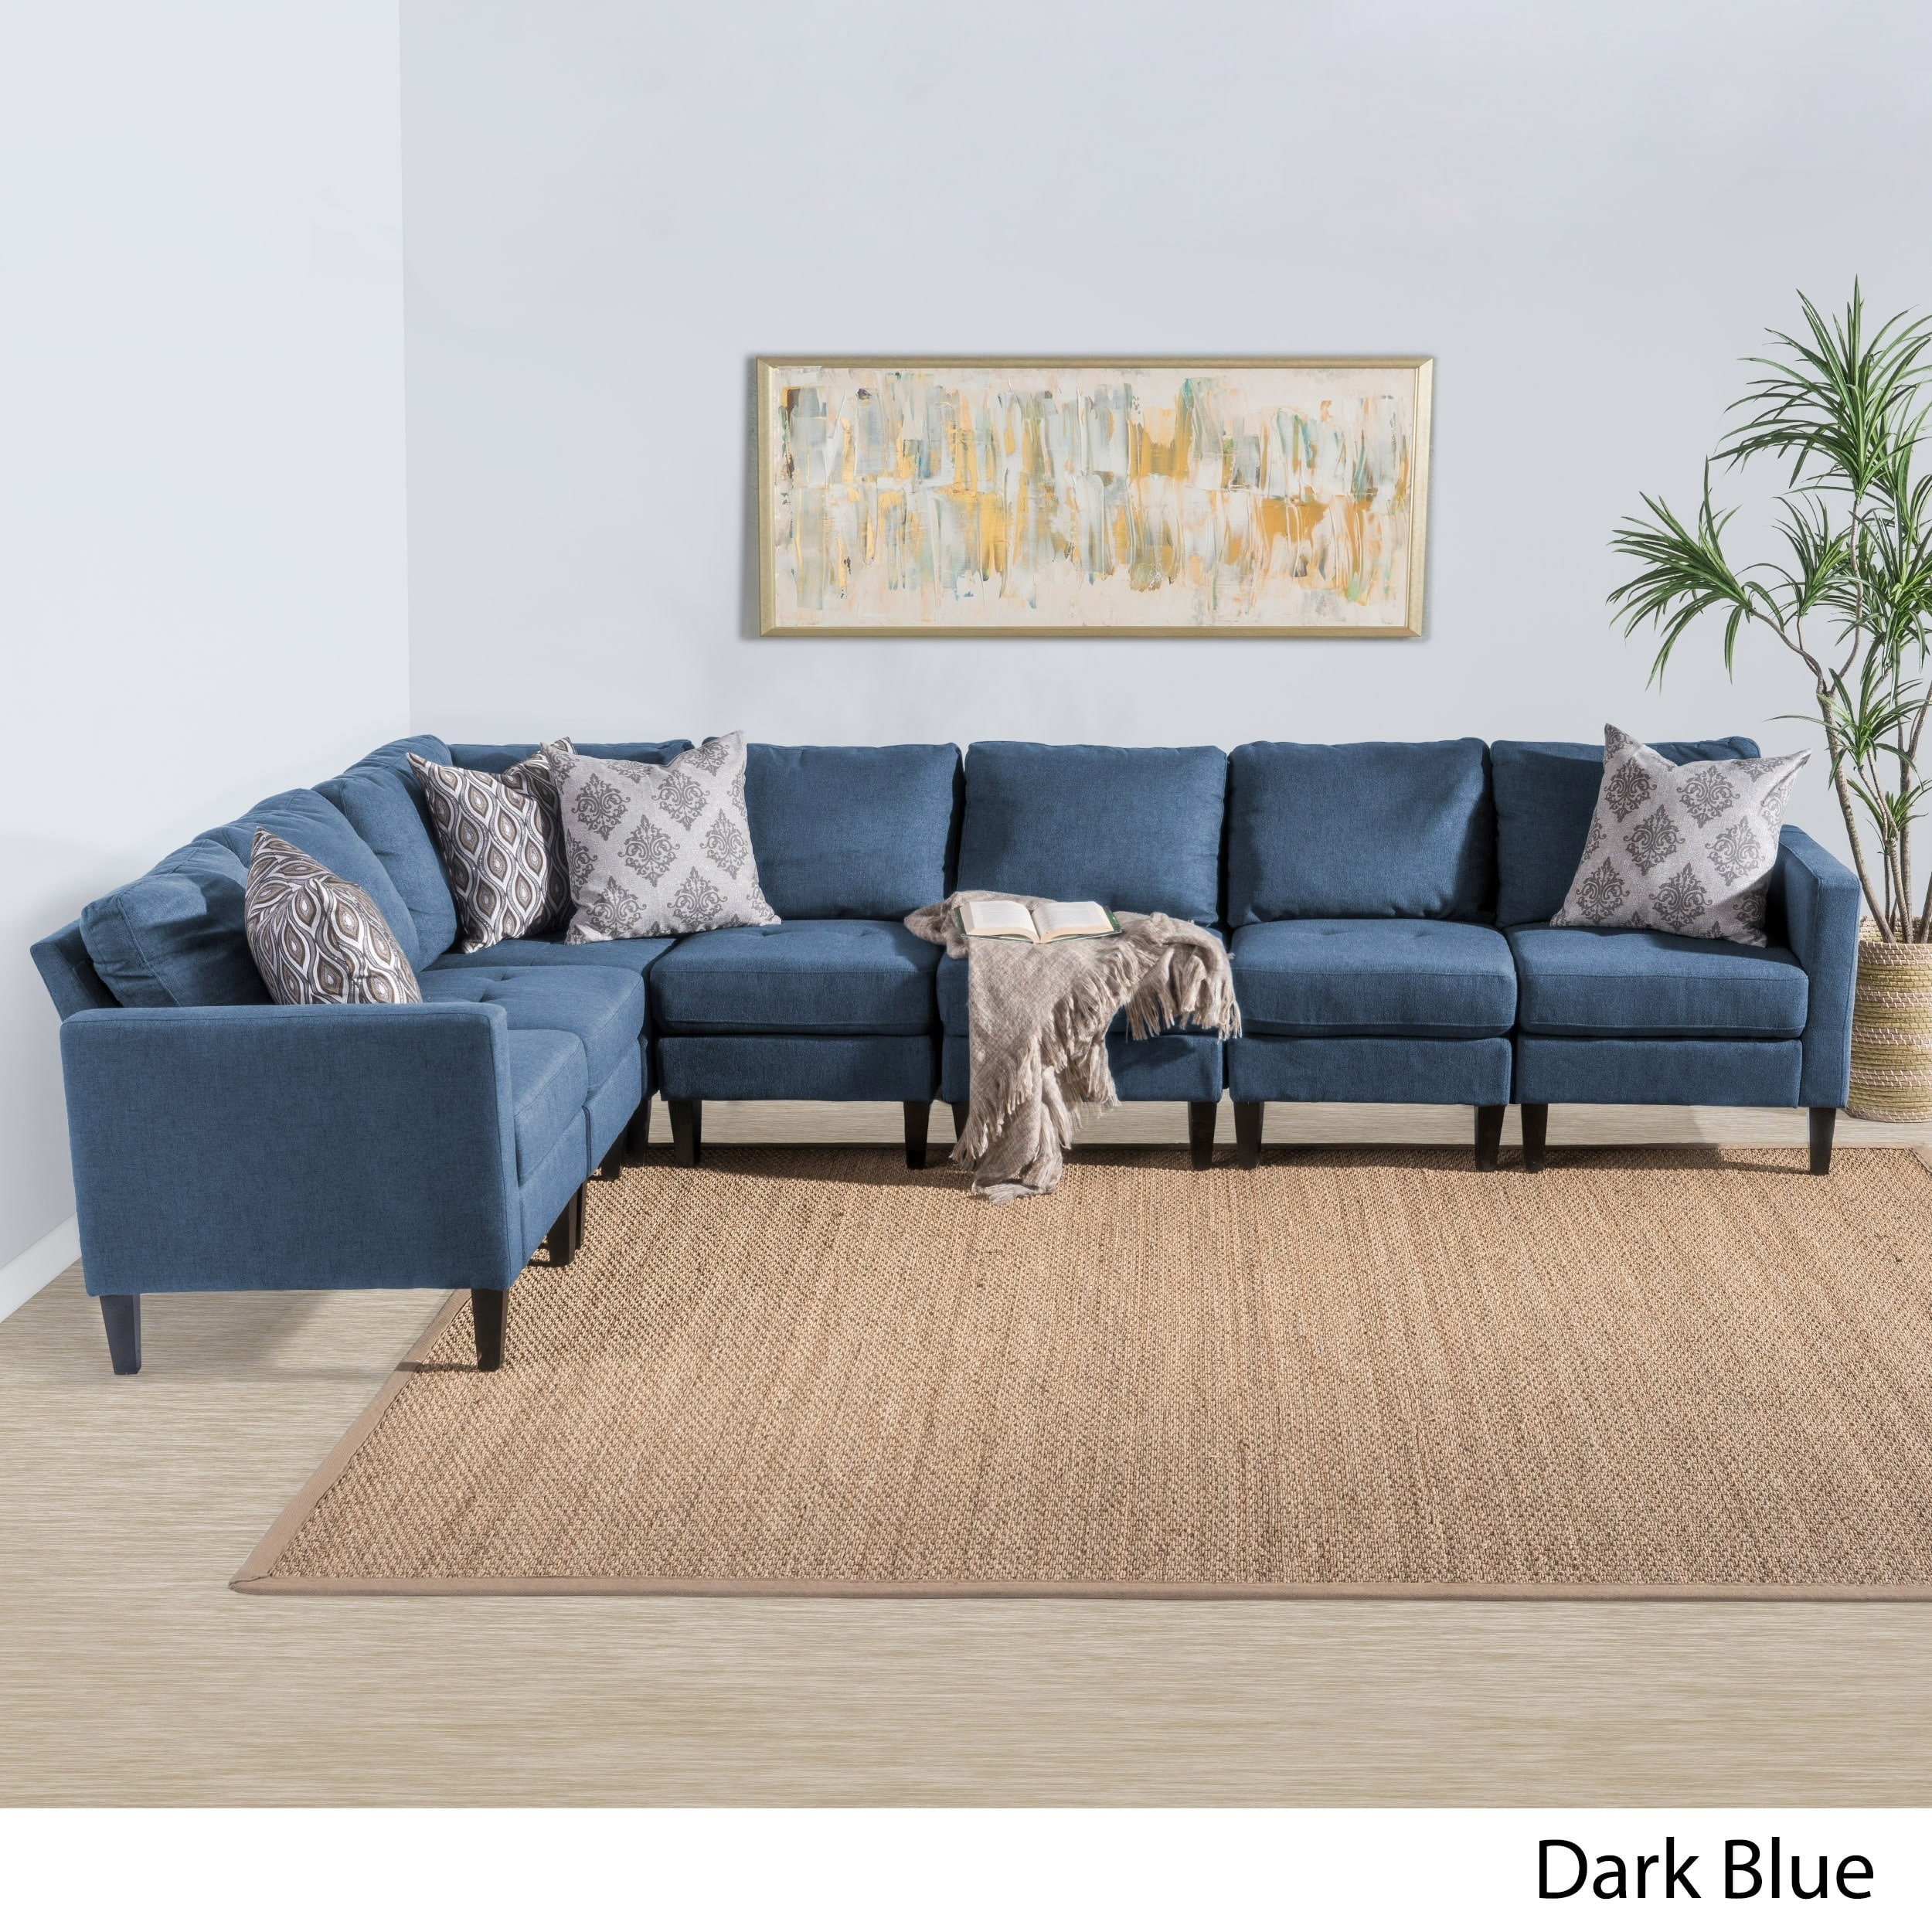 Sectional Sofa Living Room Furniture For Less | Overstock In 10X8 Sectional Sofas (View 9 of 10)